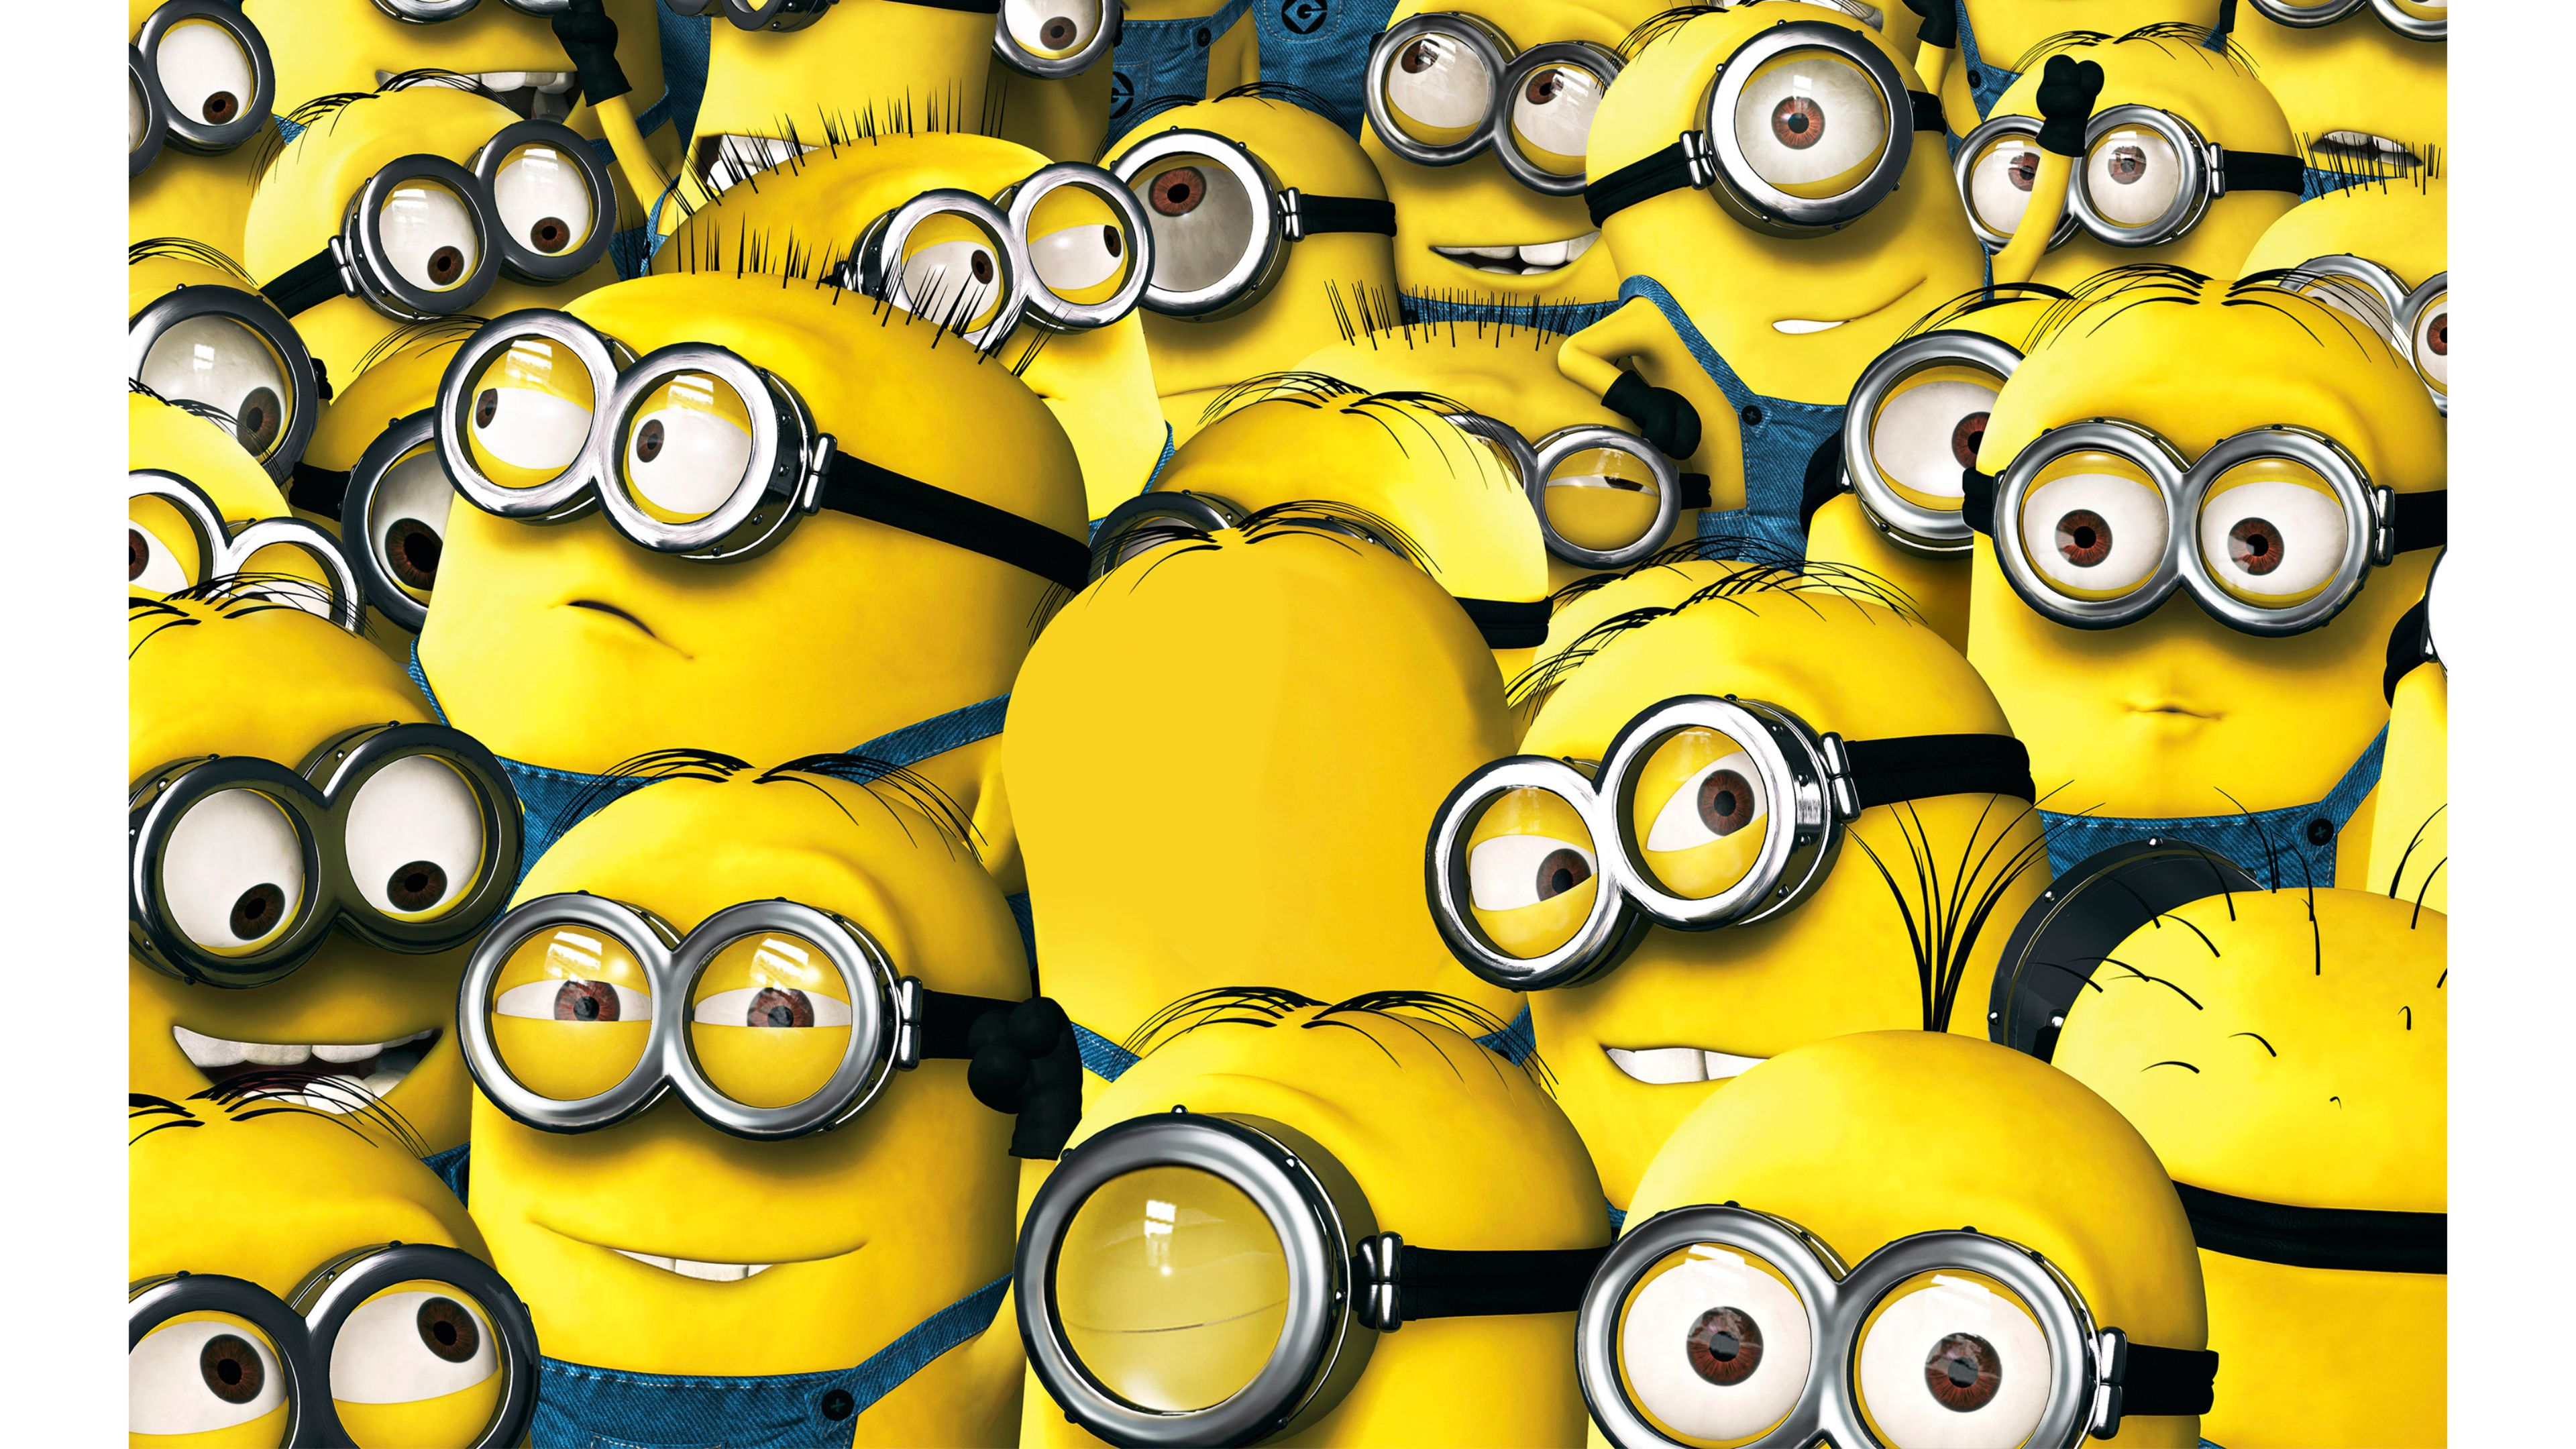 Minions 4k Wallpapers For Your Desktop Or Mobile Screen Free